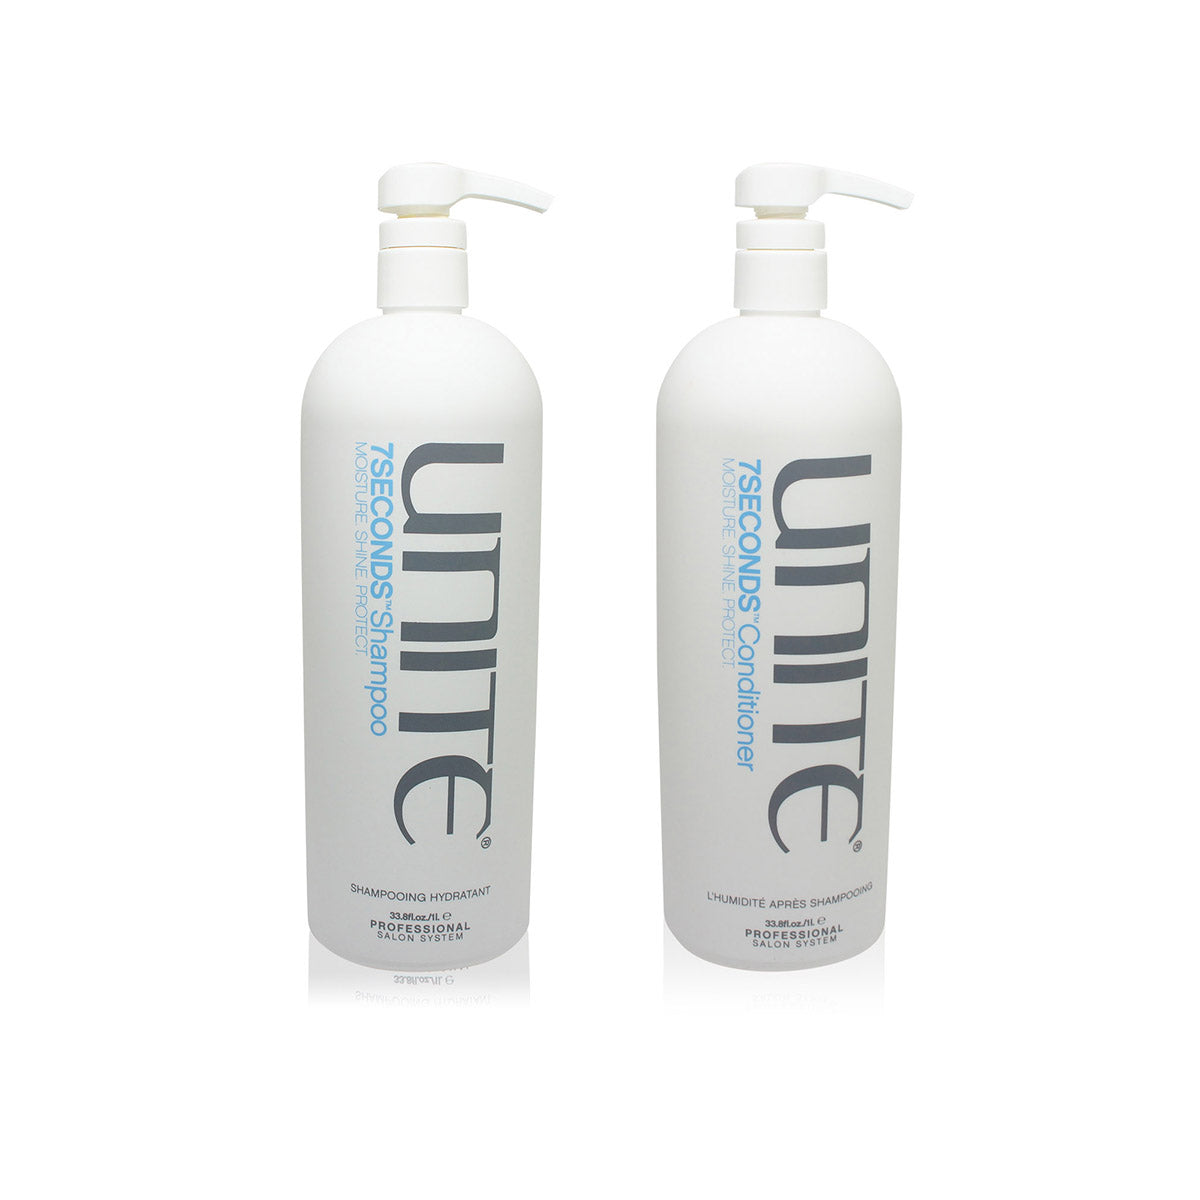 UNITE ~ 7 SECONDS SHAMPOO AND CONDITIONER LITER COMBO PACK